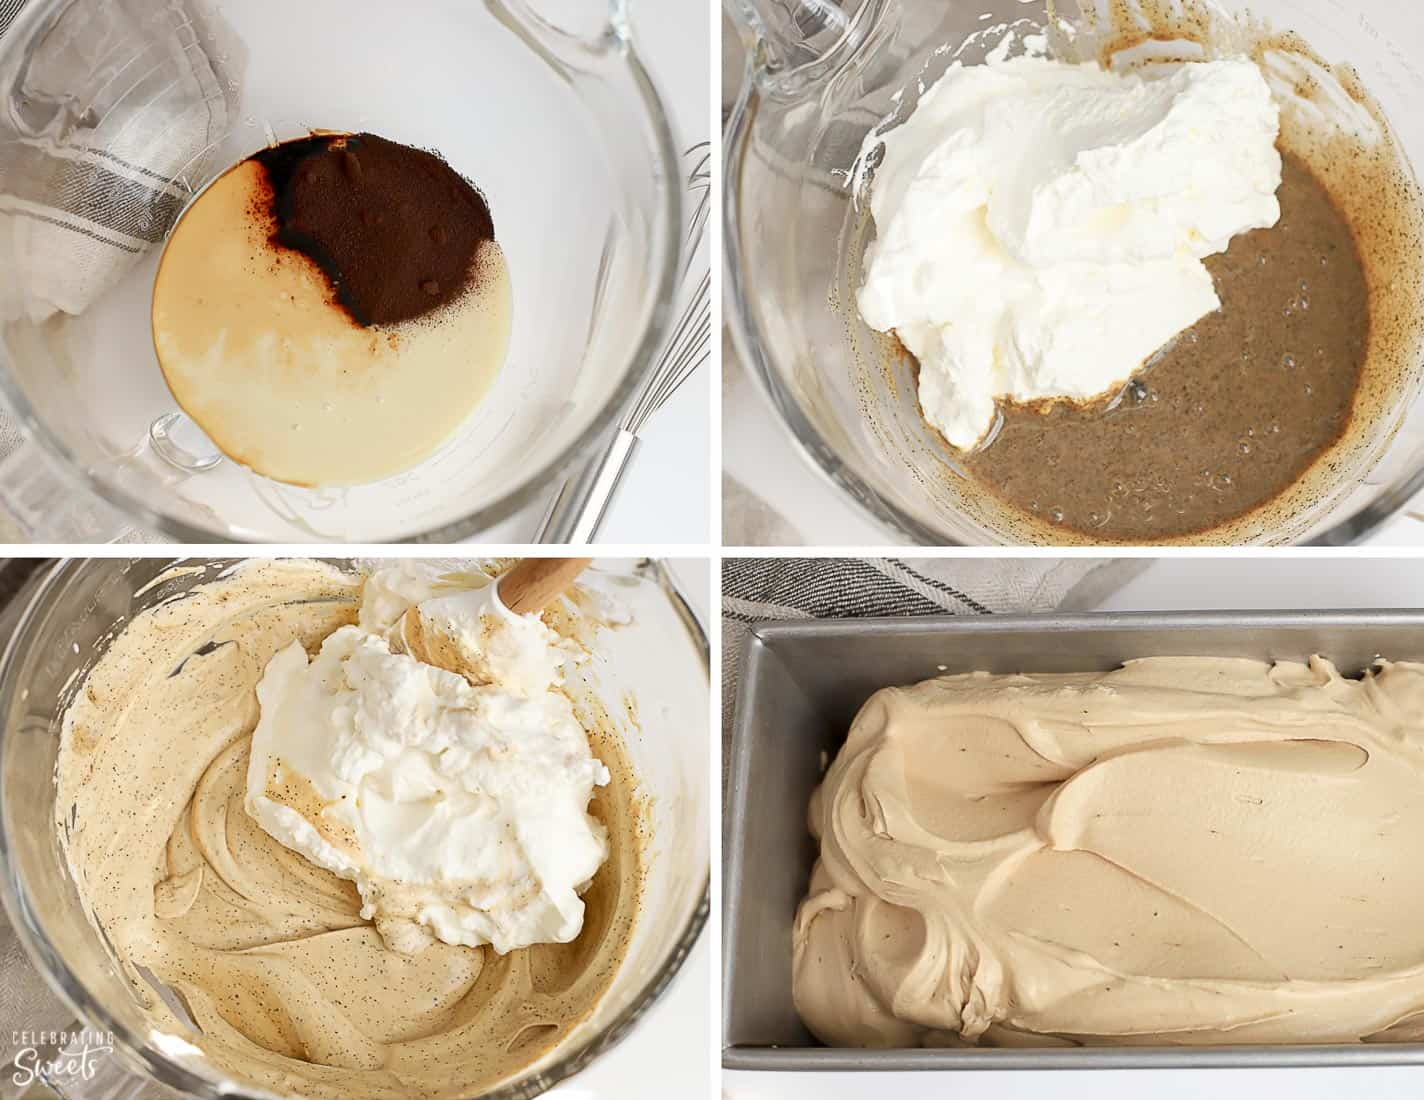 Coffee ice cream base in a bowl and loaf pan.